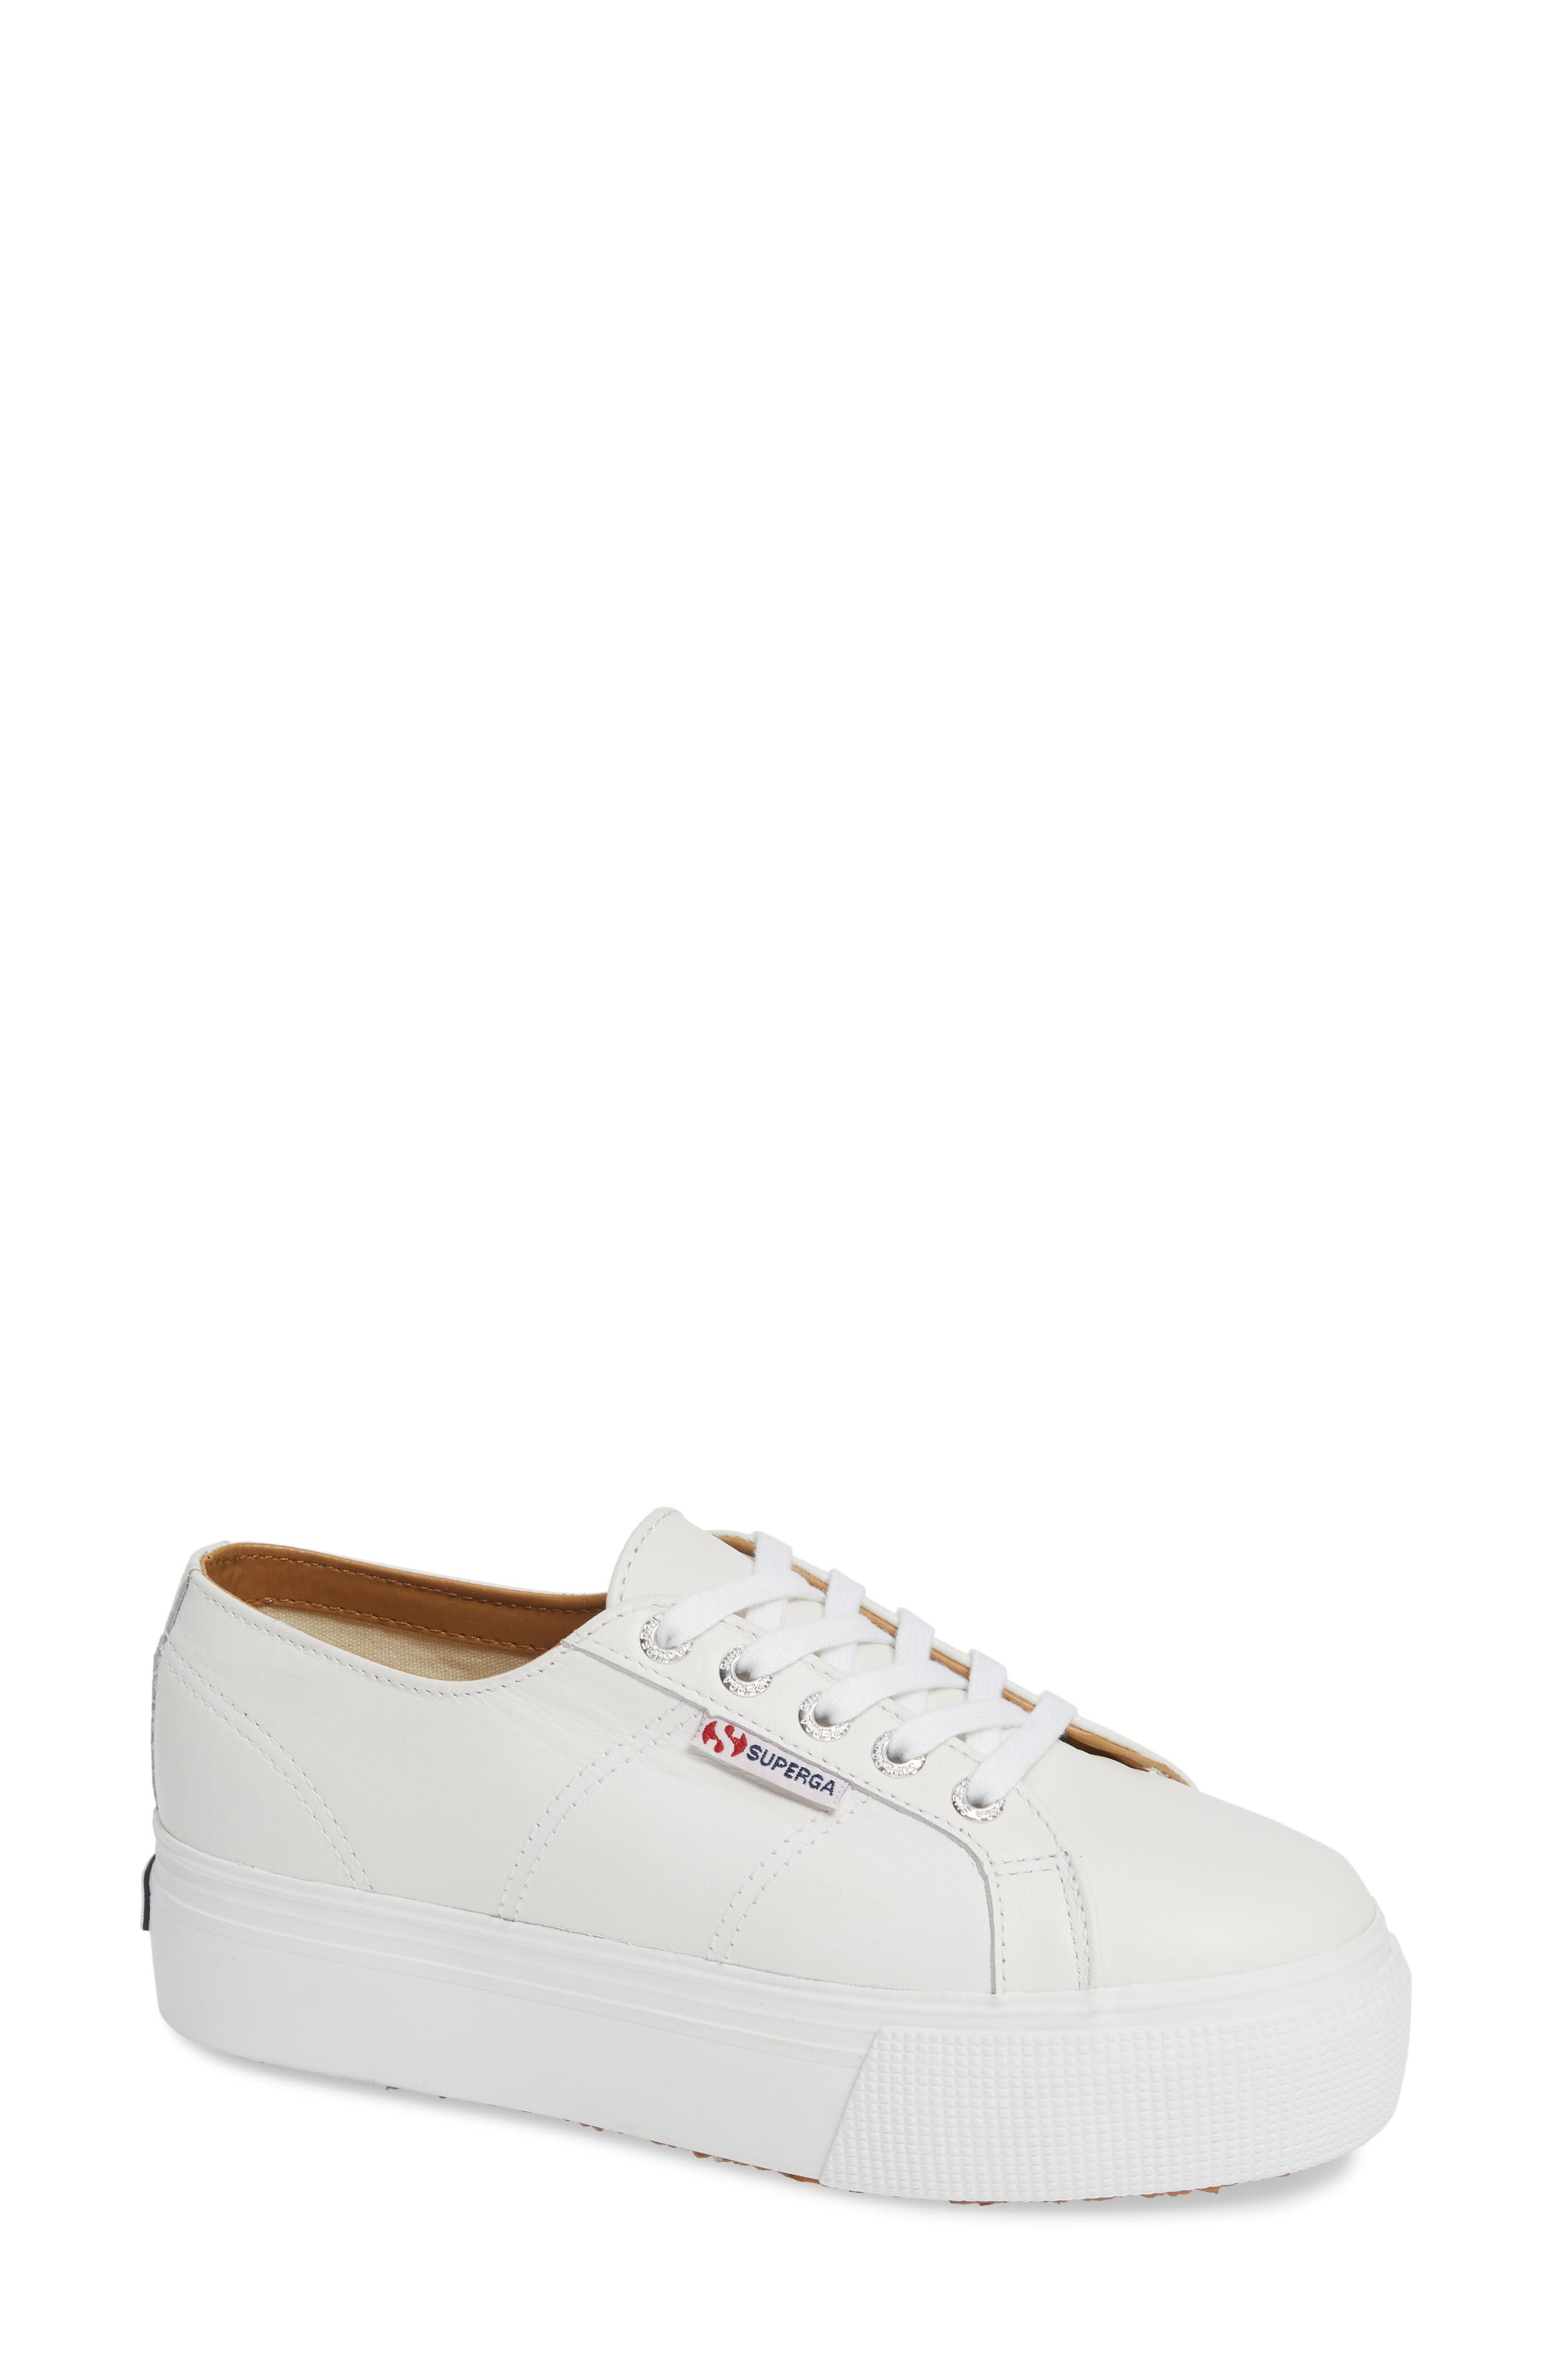 3196fd36e7e53b Superga Shoes   Sneakers